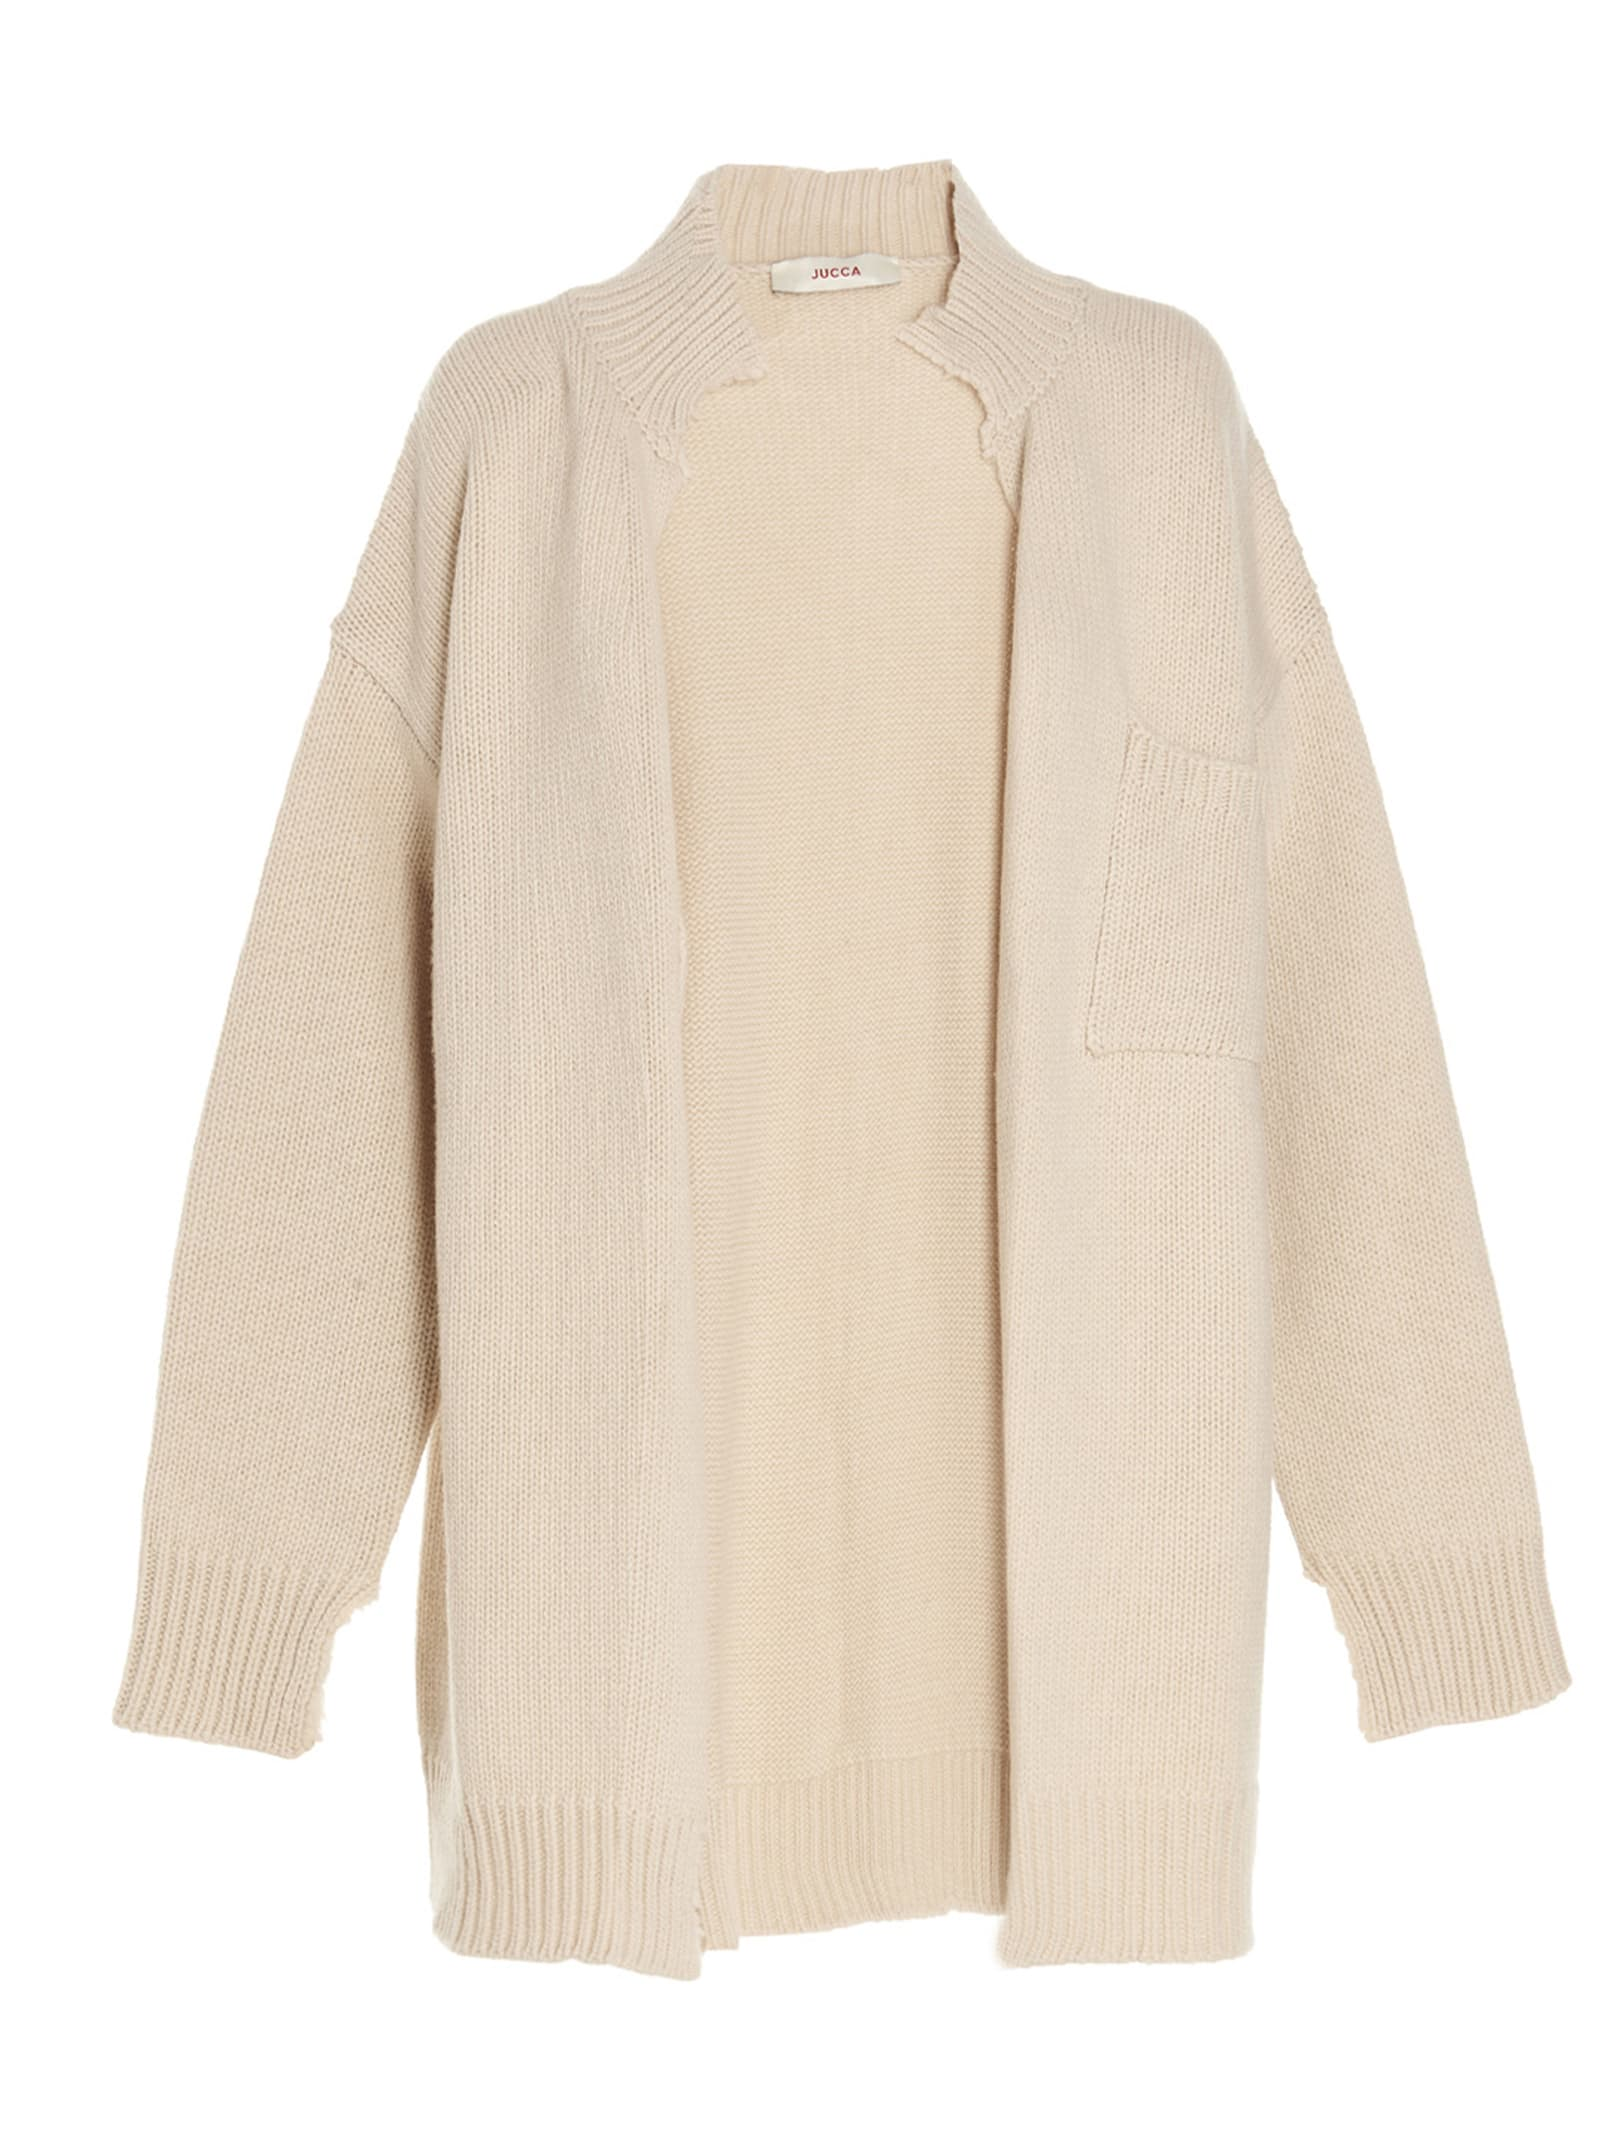 Jucca Destroyed Cardigan